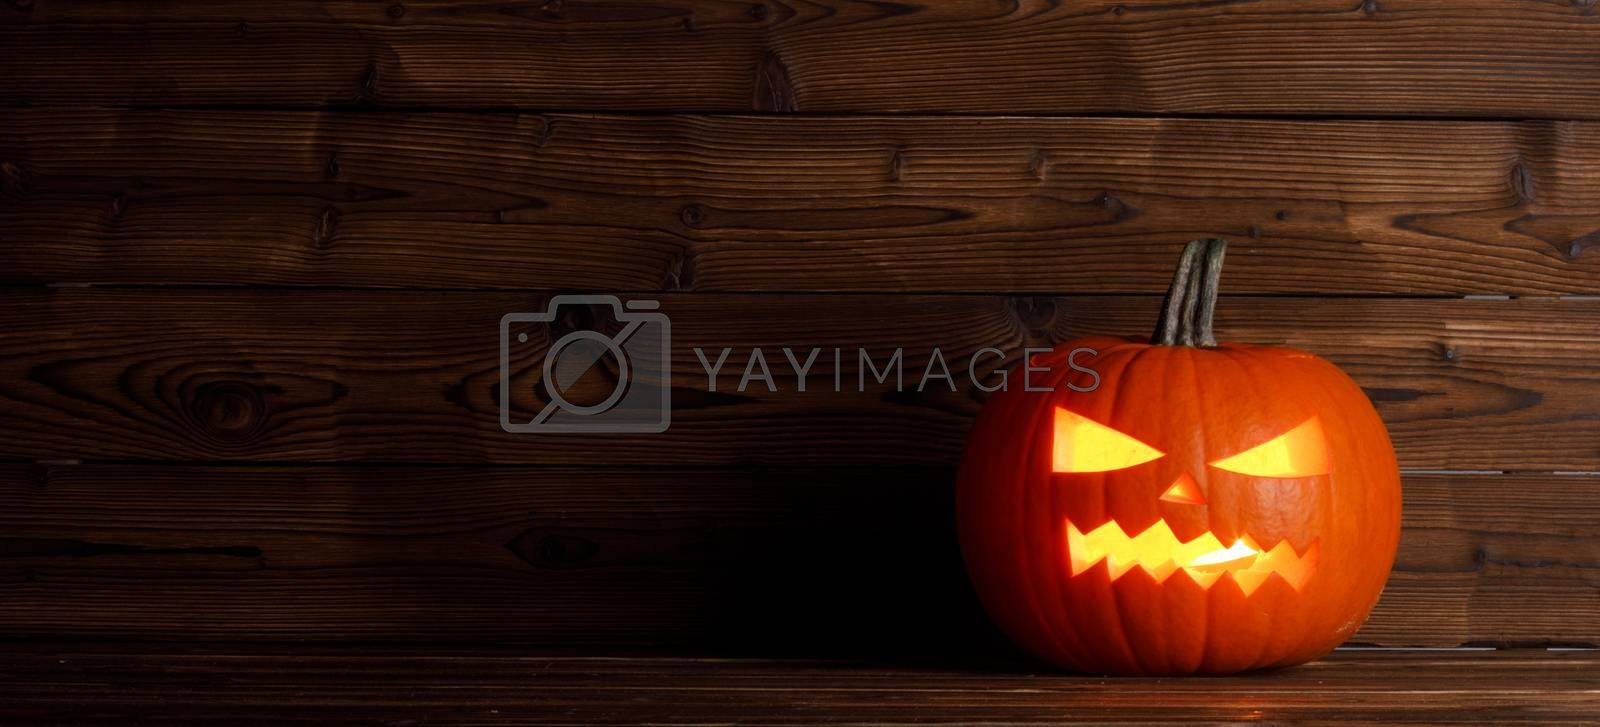 Halloween pumpkin head jack o lantern with candle inside on wooden background